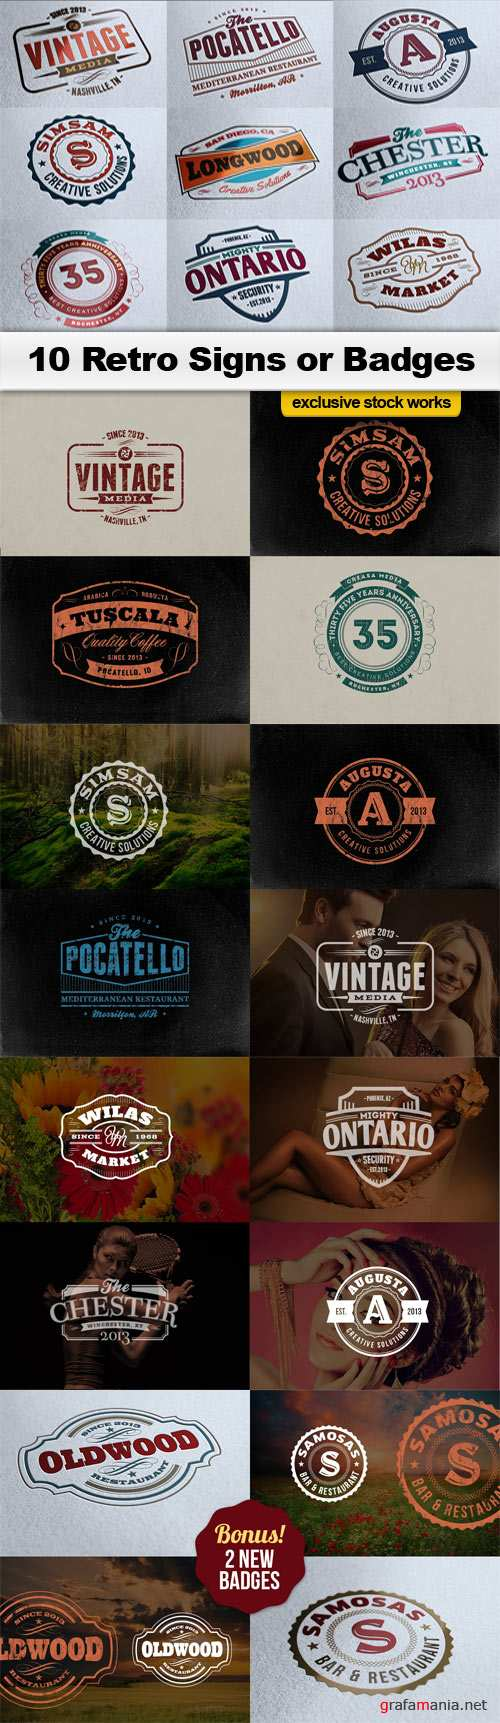 10 Retro Signs or Badges